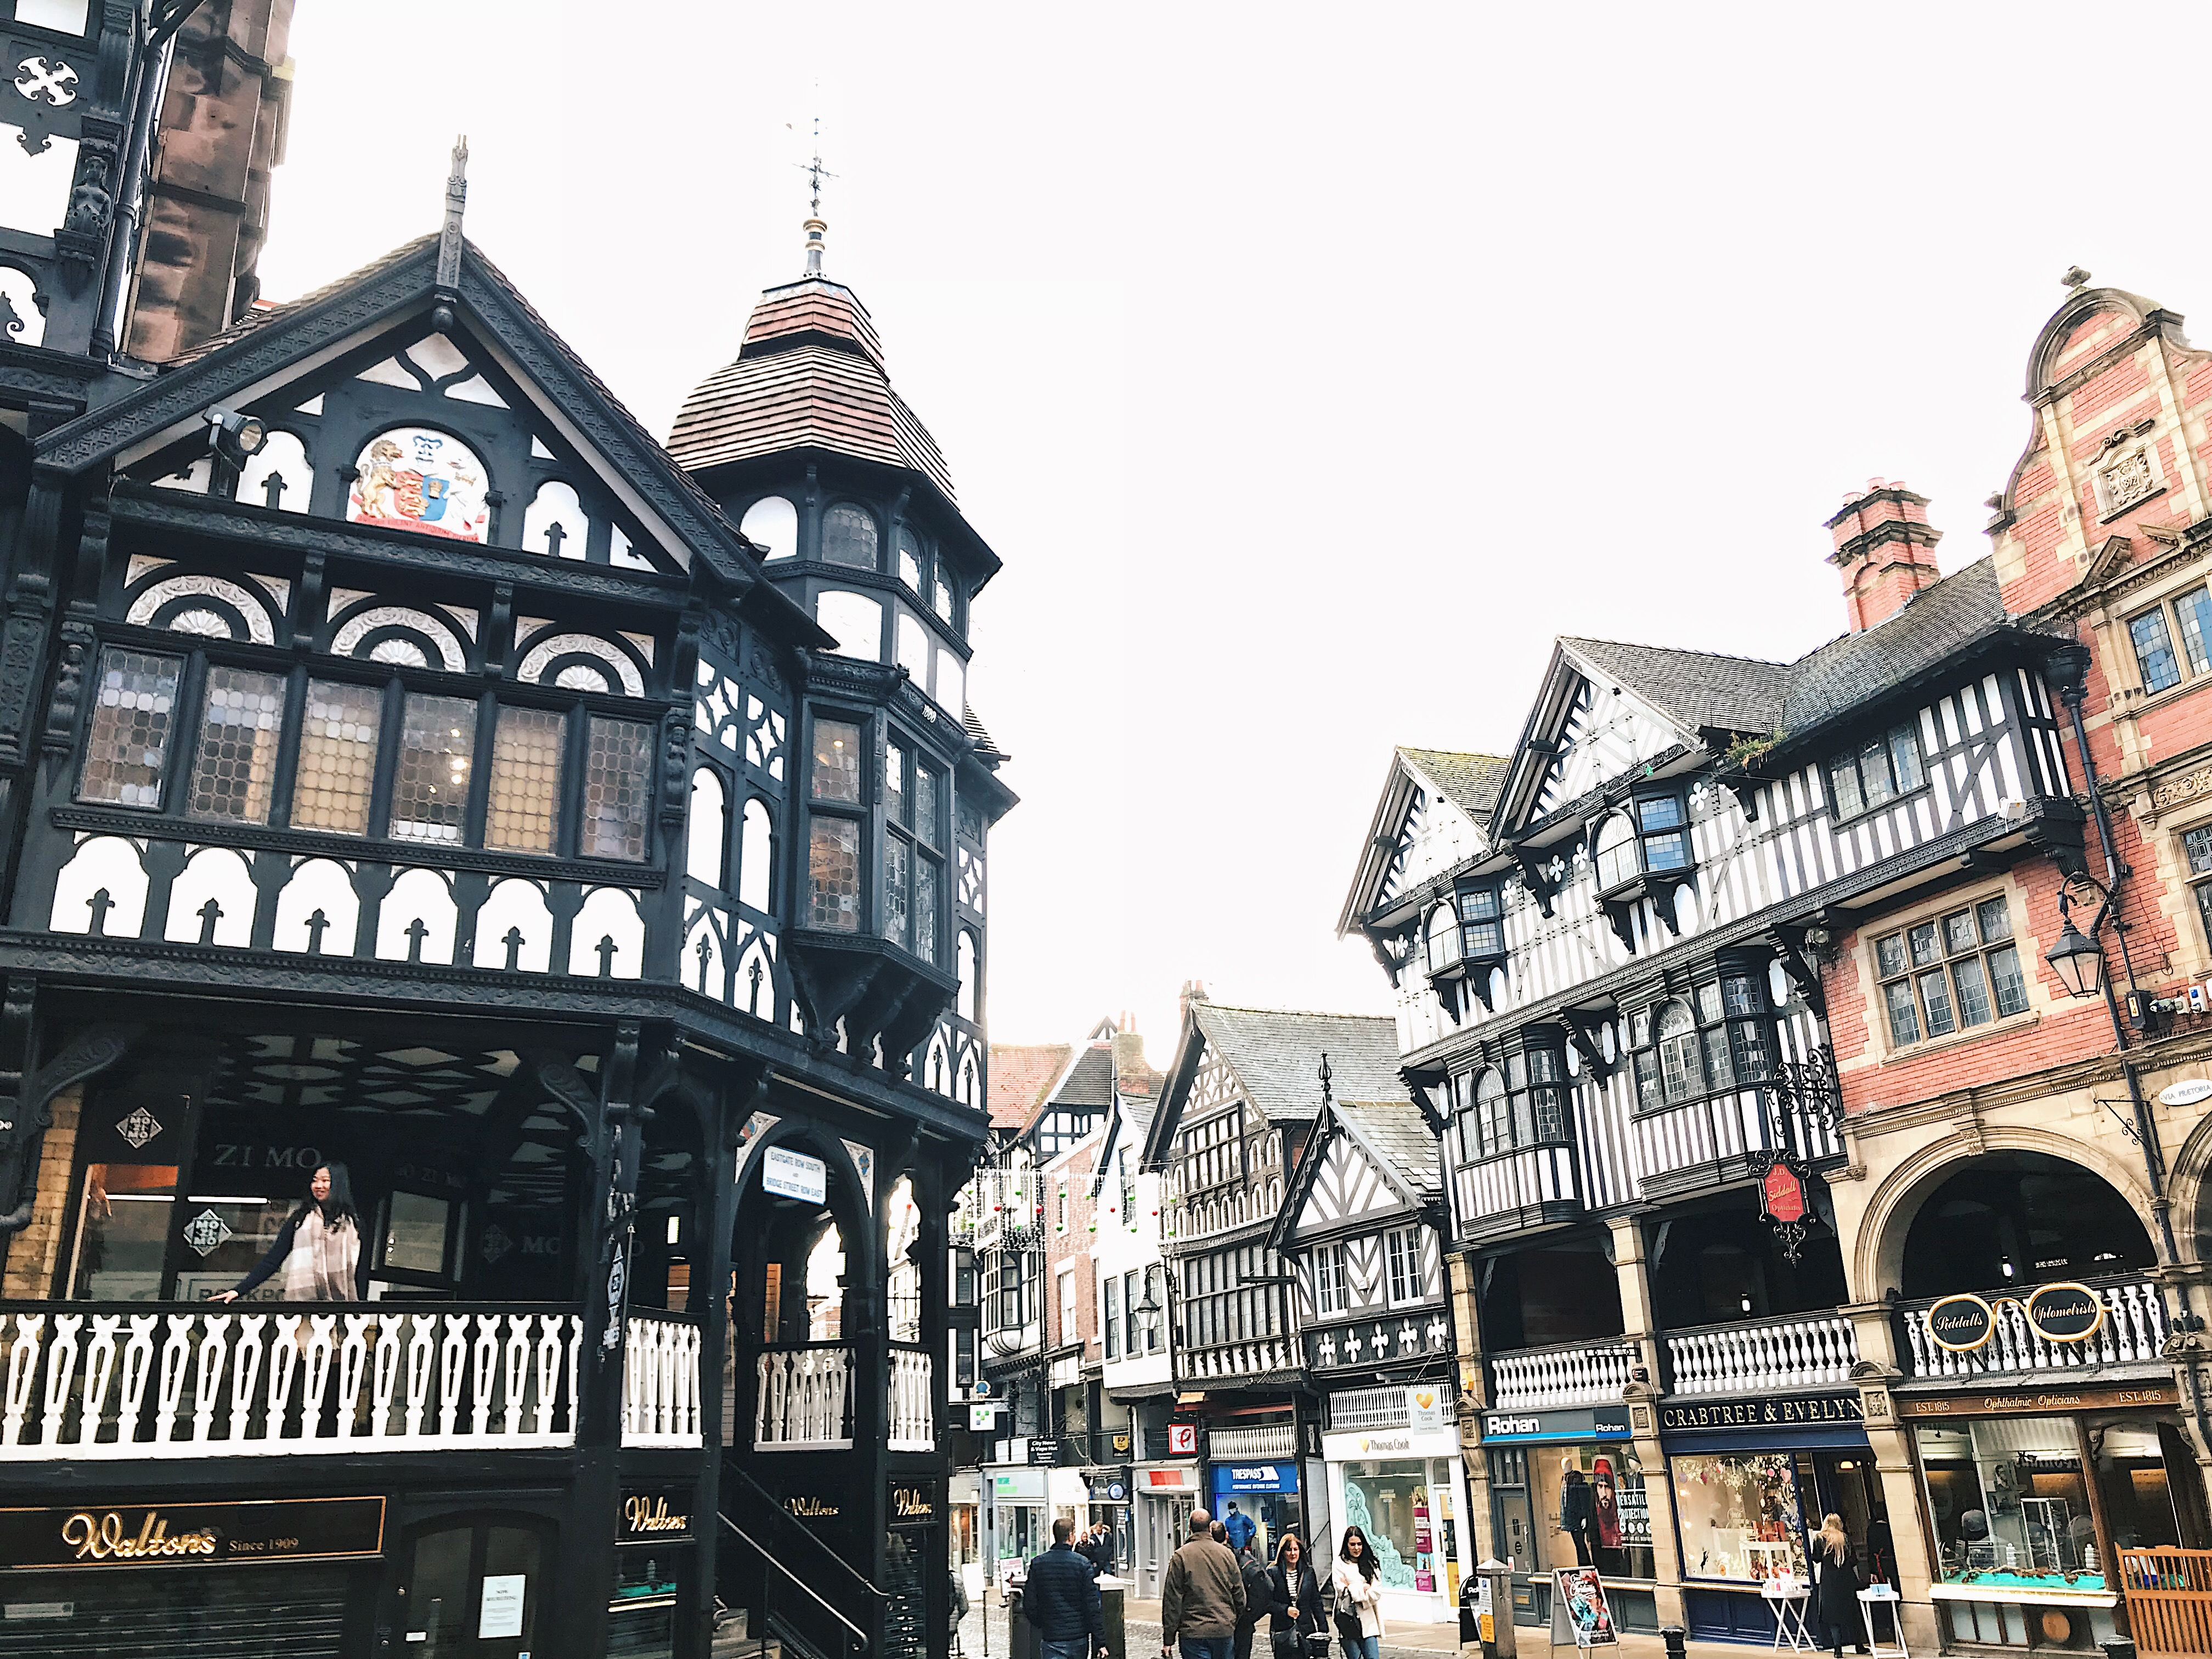 Weekend away in beautiful Chester